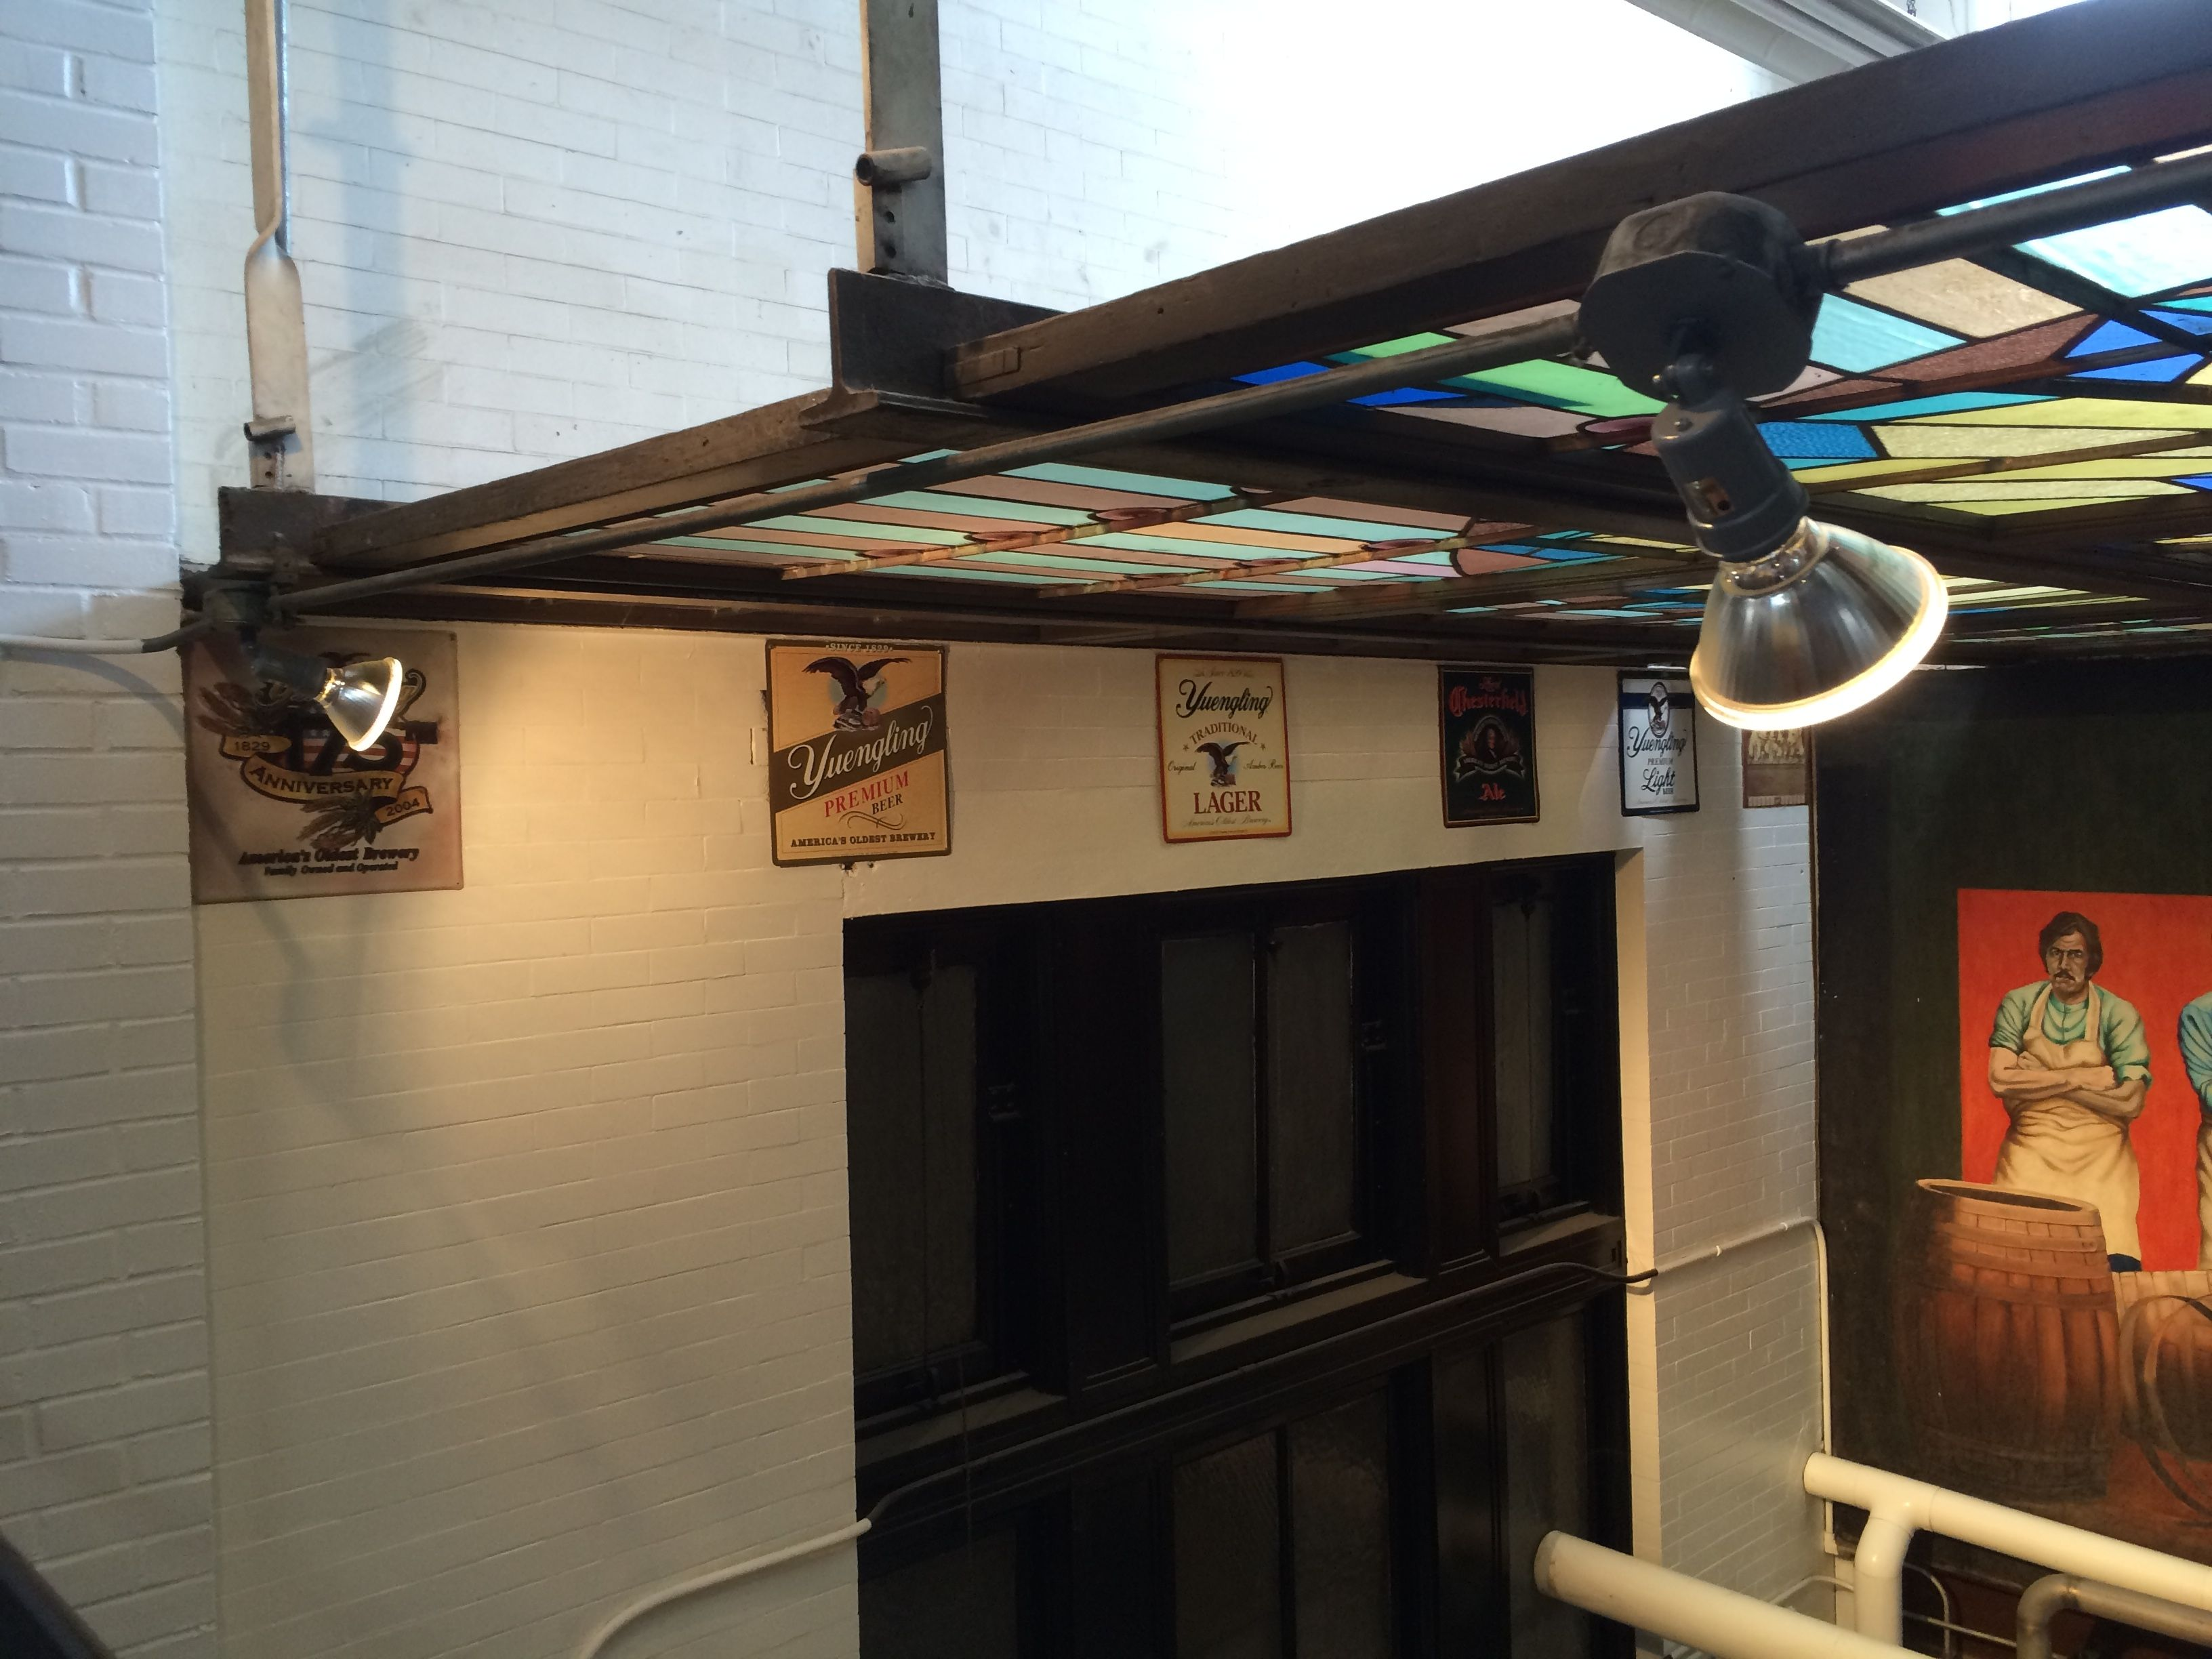 Stained glass window suspended under the skylight